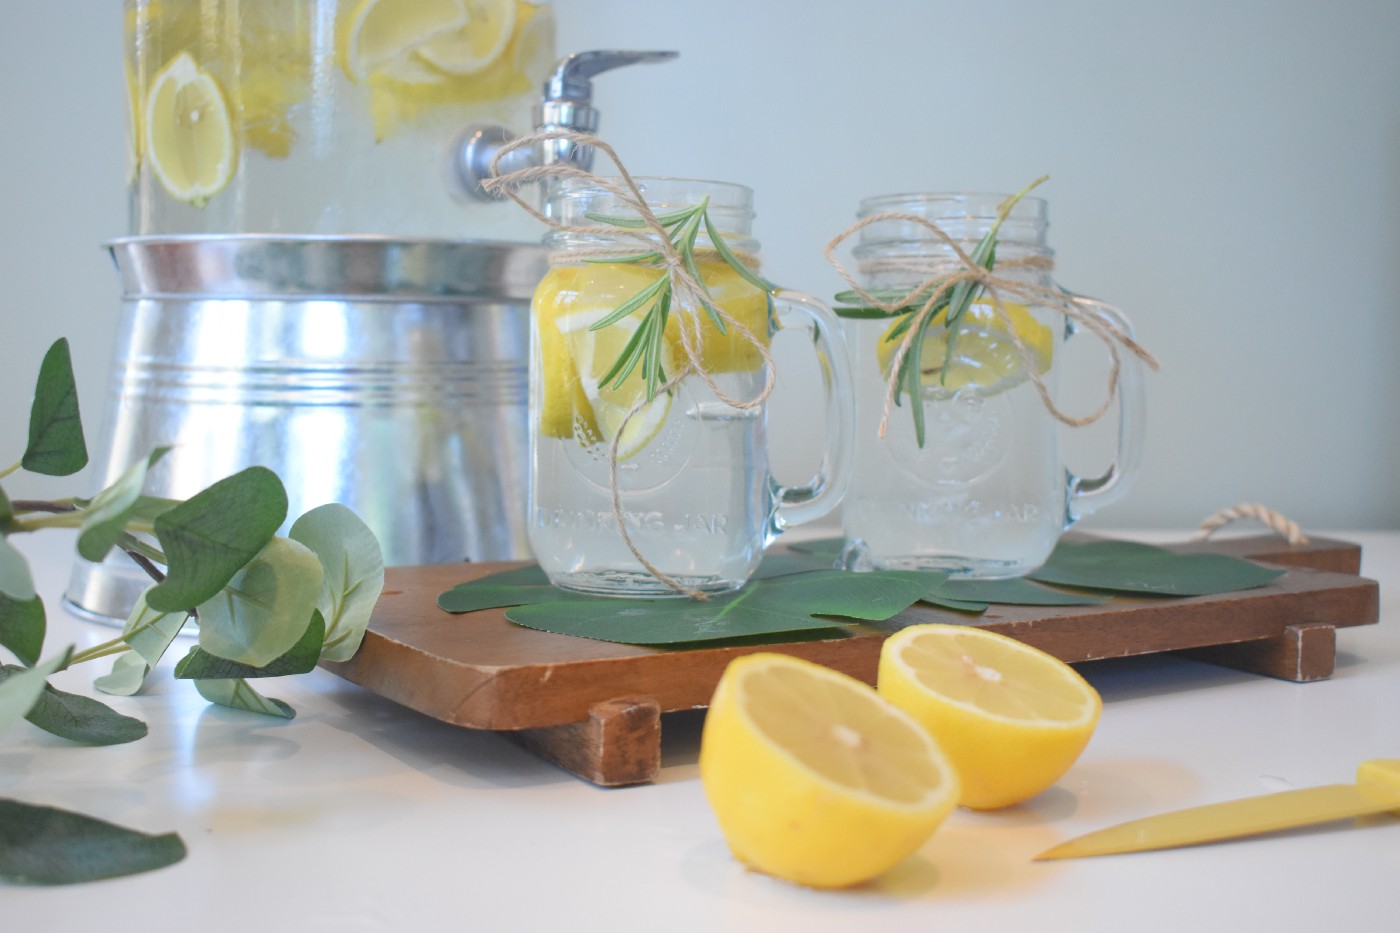 Citrus limes and lemons in water